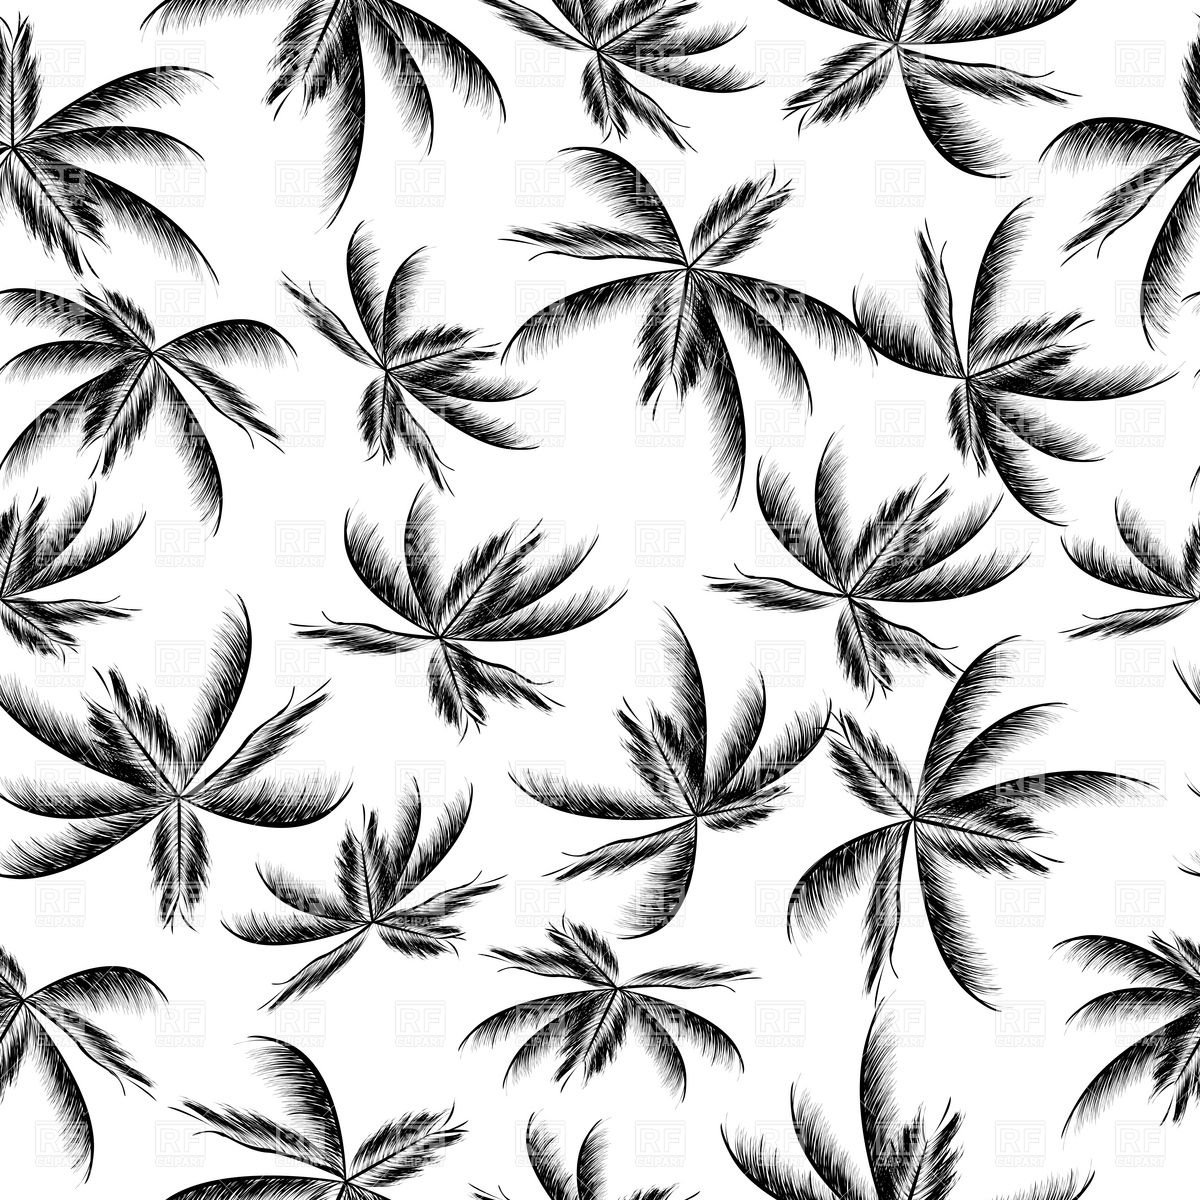 Palm Tree Leaf Seamless Pattern 8581 Backgrounds Textures Abstract 1200x1200